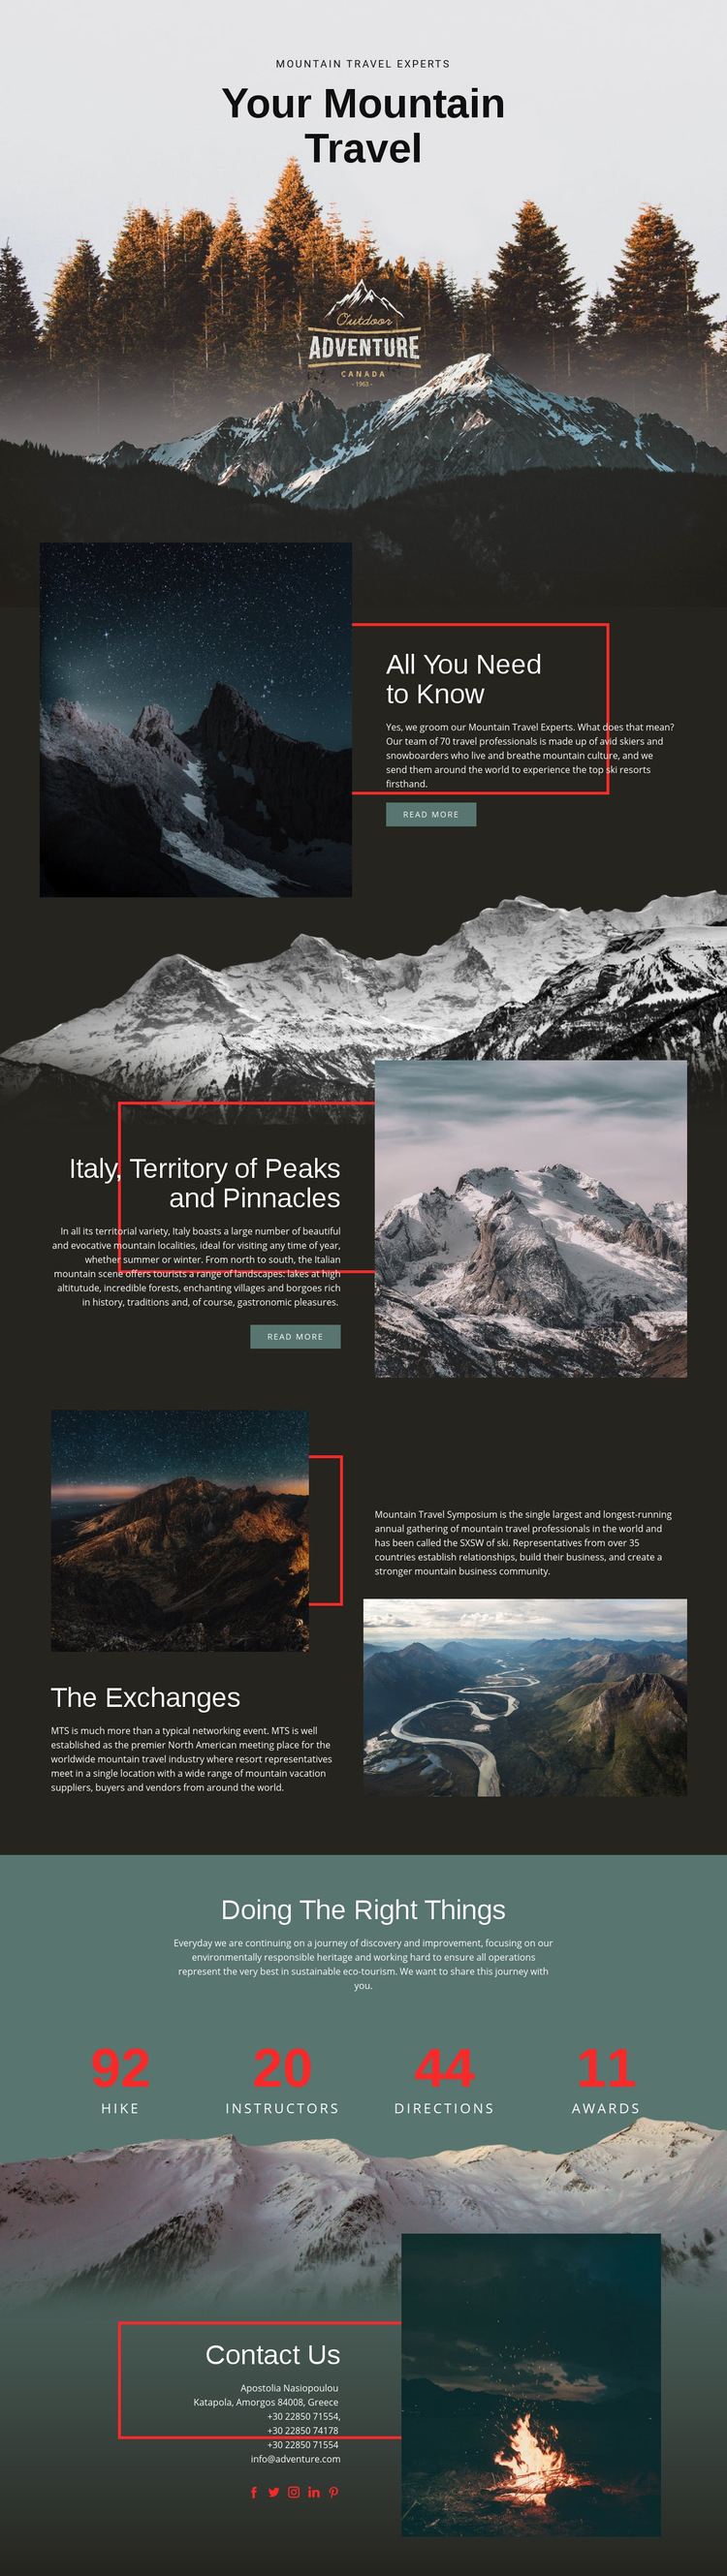 All about mountain travel Web Page Design